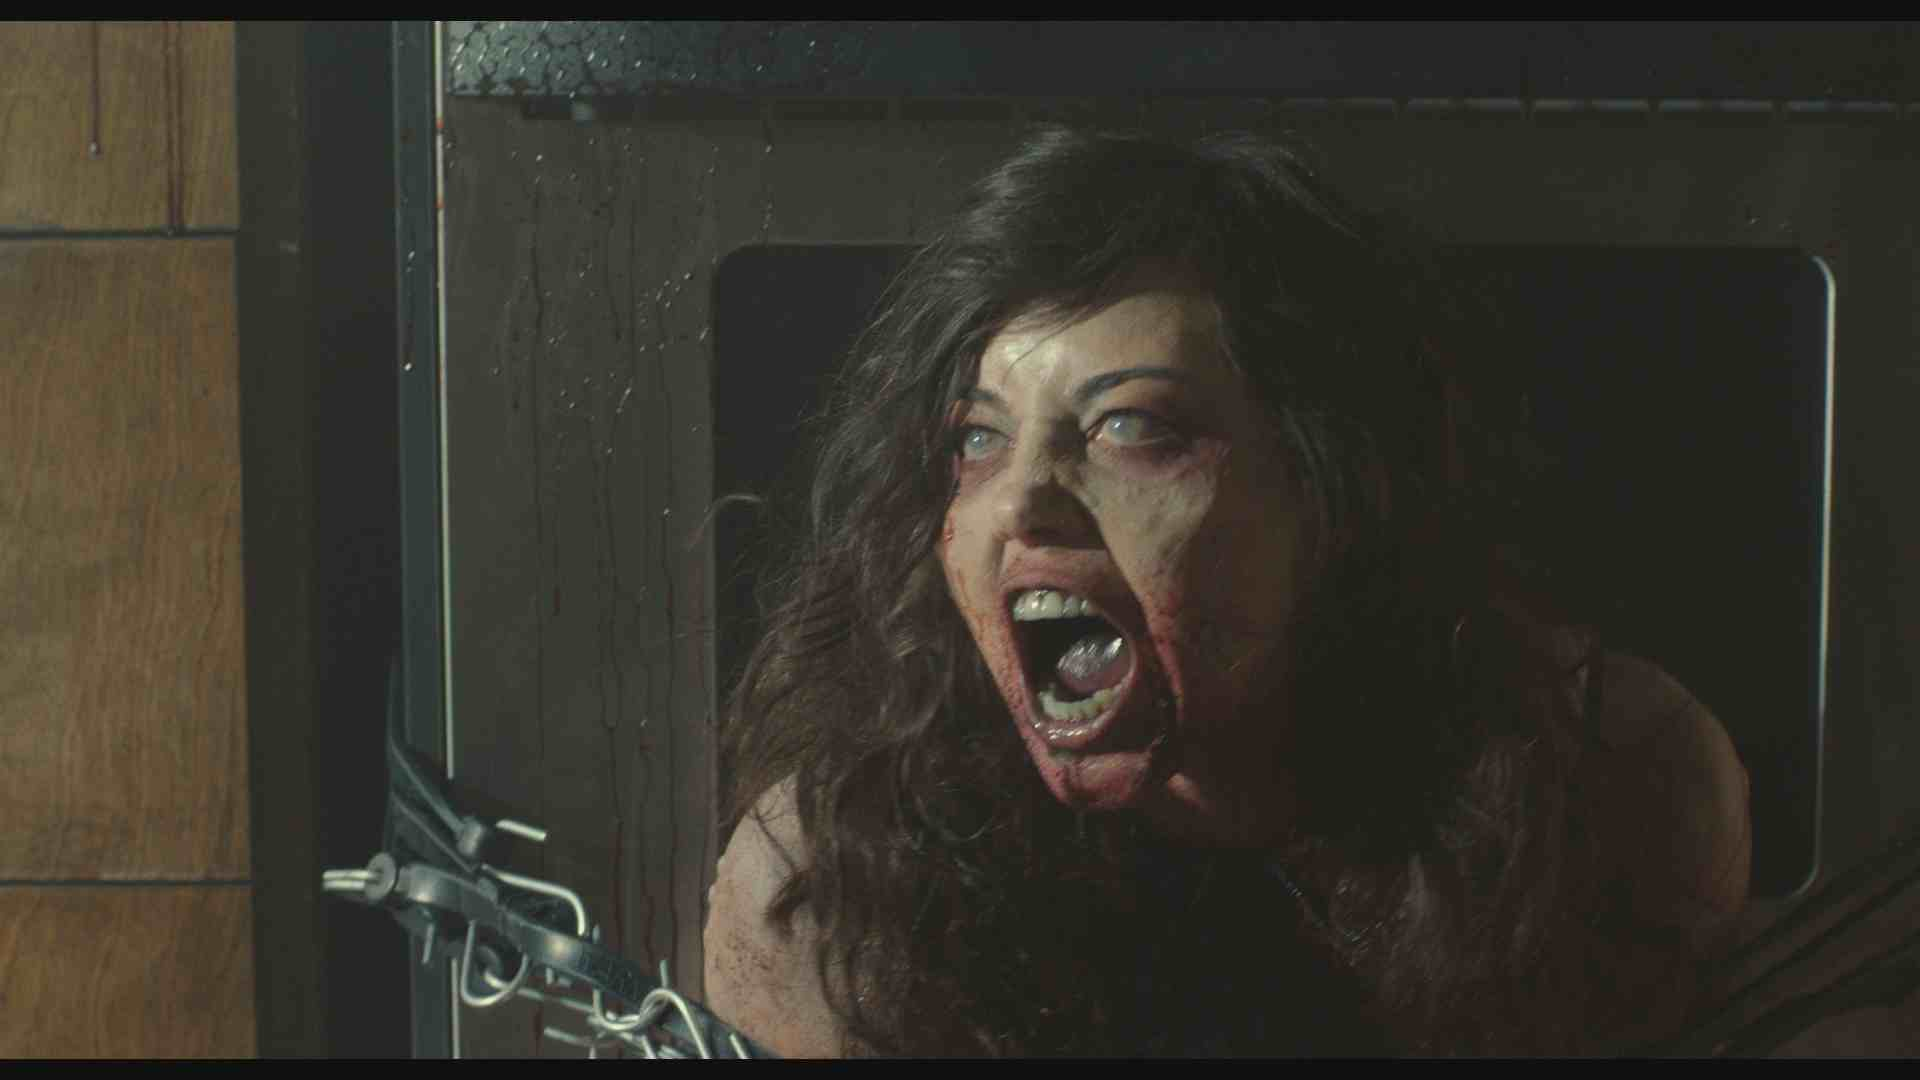 Std On Tongue >> Film Review: 'Life After Beth' Starring Aubrey Plaza, Dane DeHaan, John C. Reilly & More | The ...